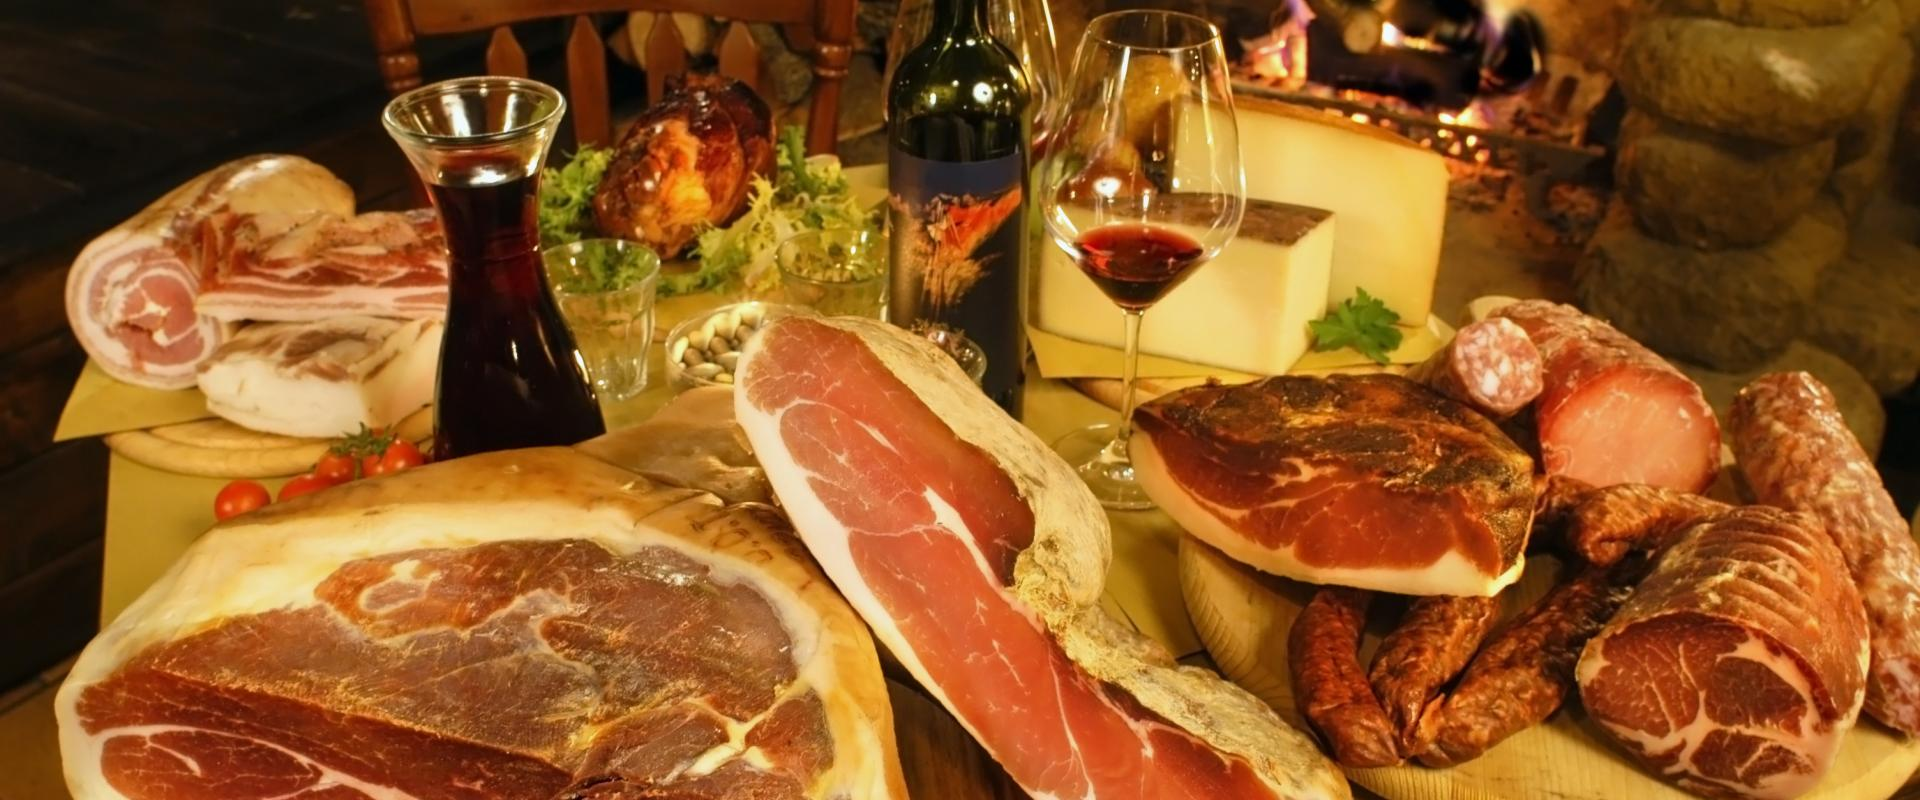 Visit of a ham factory and tasting of San Daniele